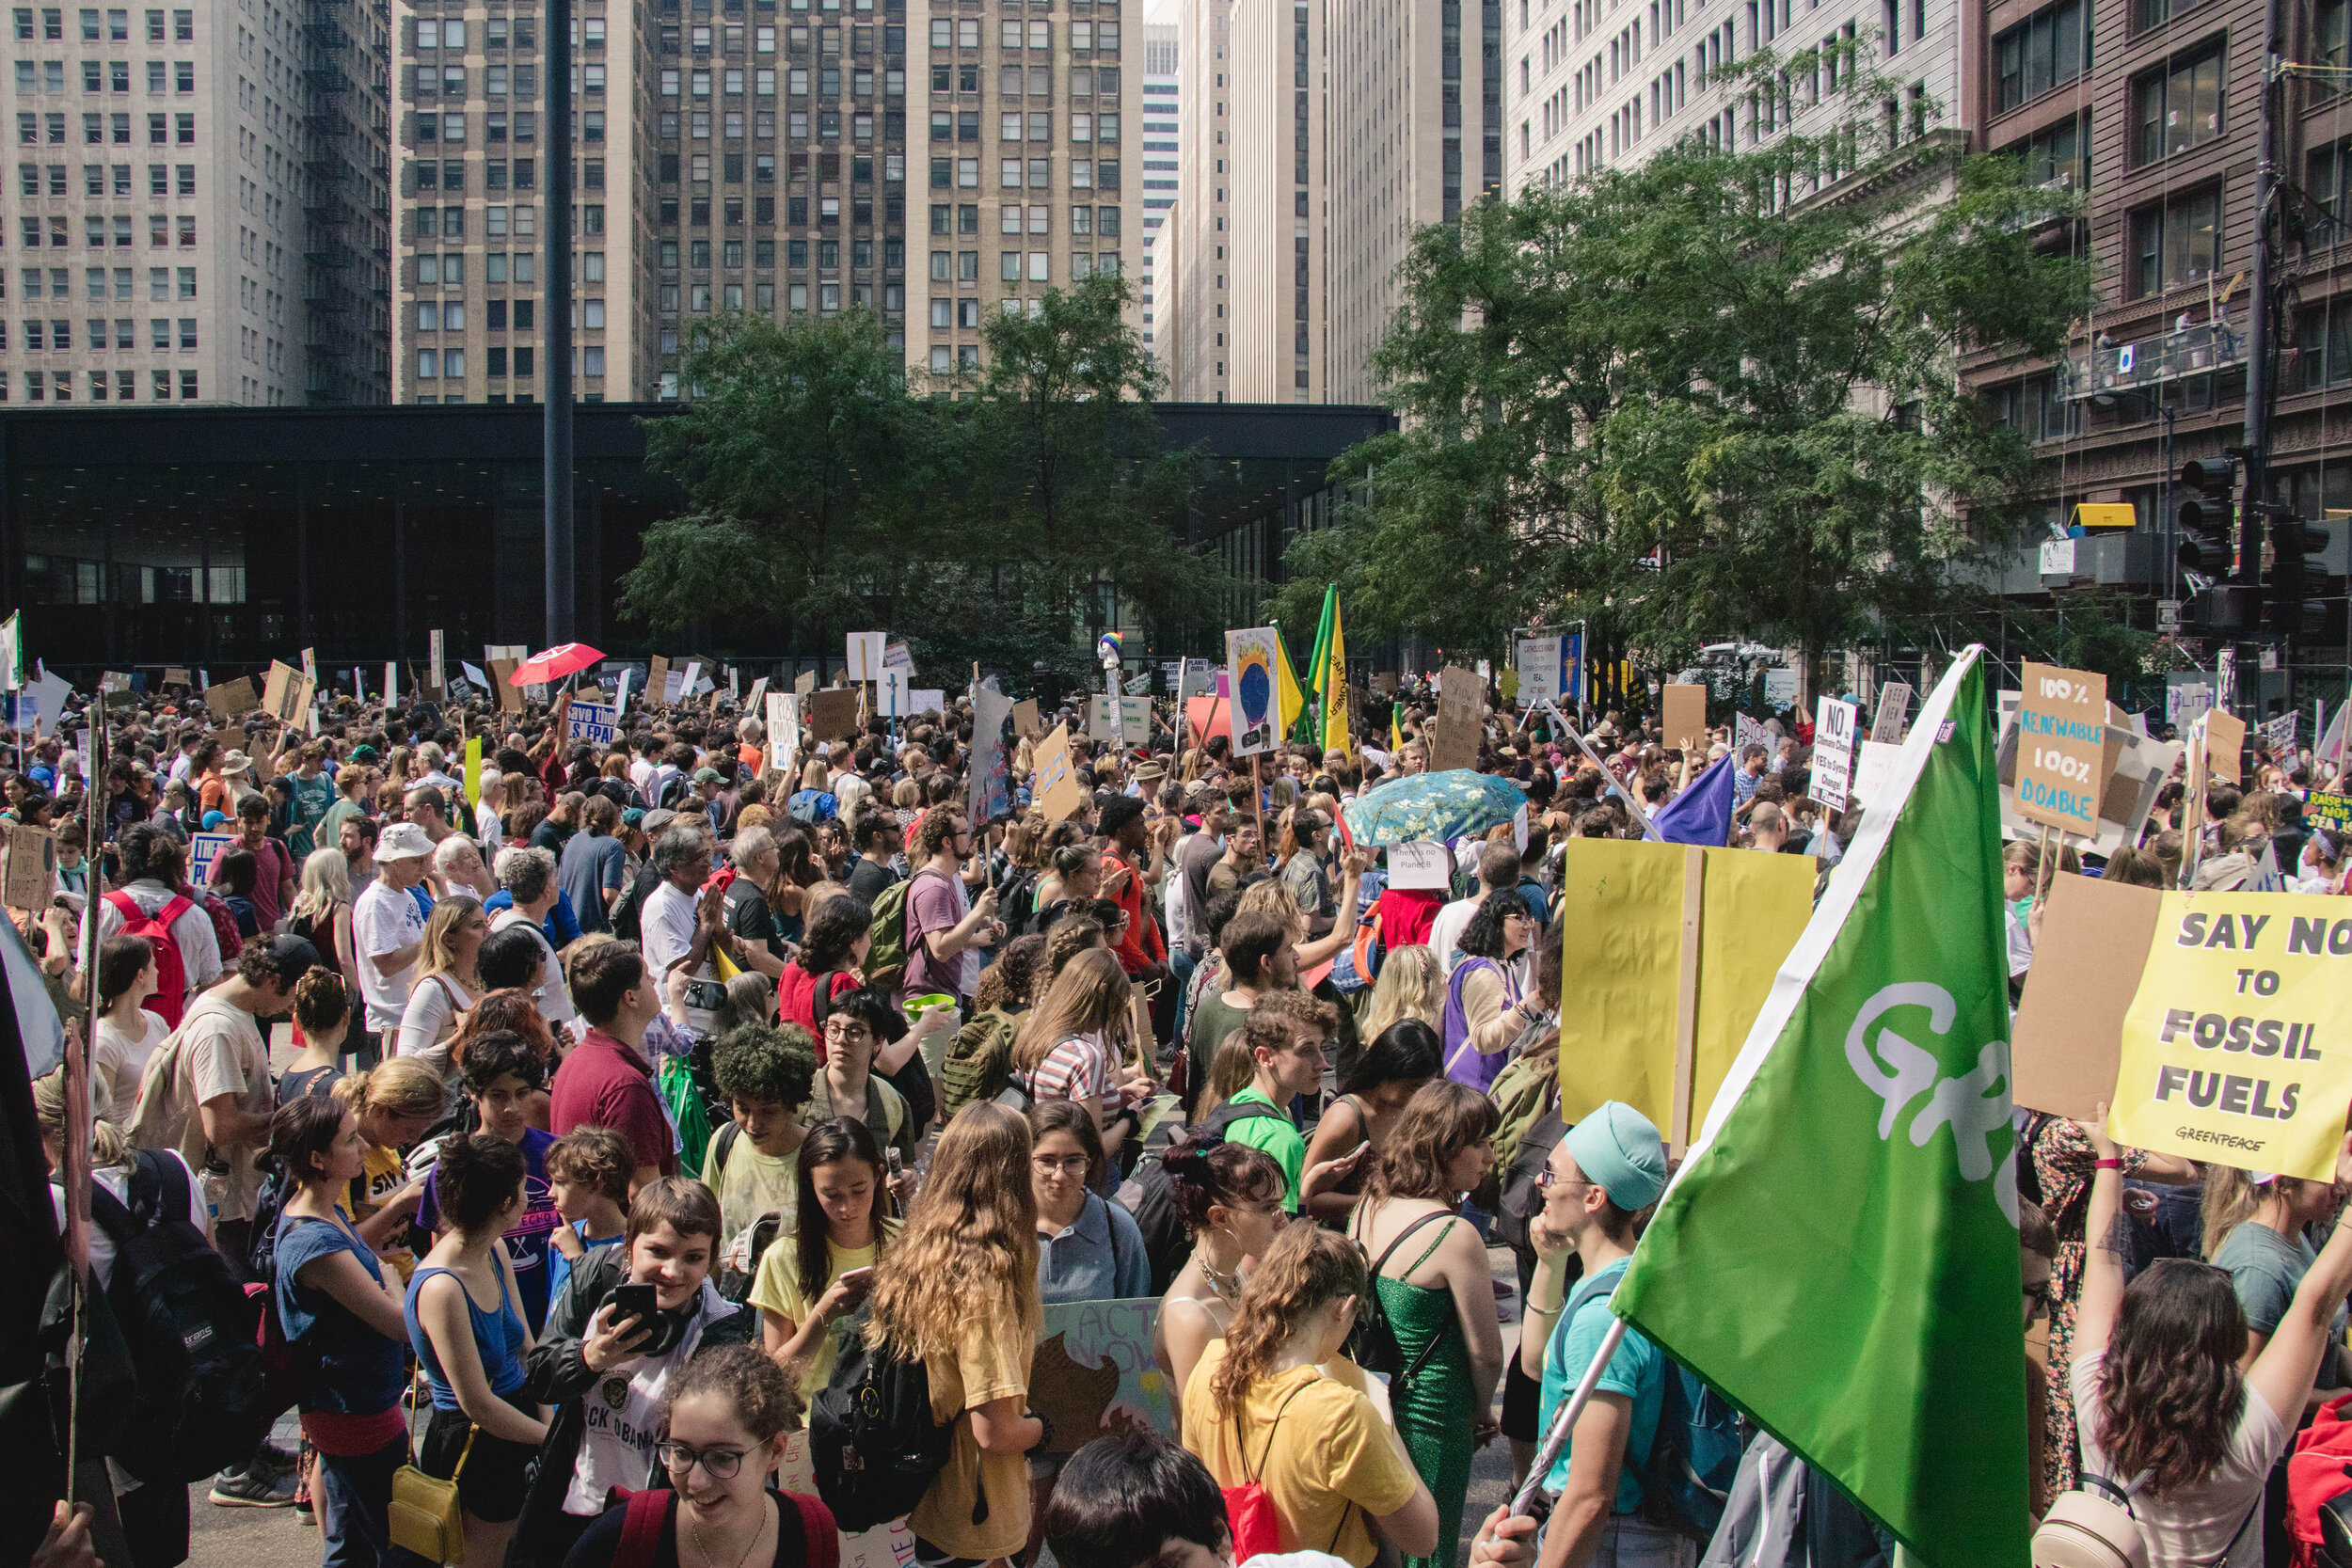 After marching for over a mile, the bulk of the organizers amassed at Federal Plaza. They crowded over a set of benches where youth leaders stood and read their speeches.